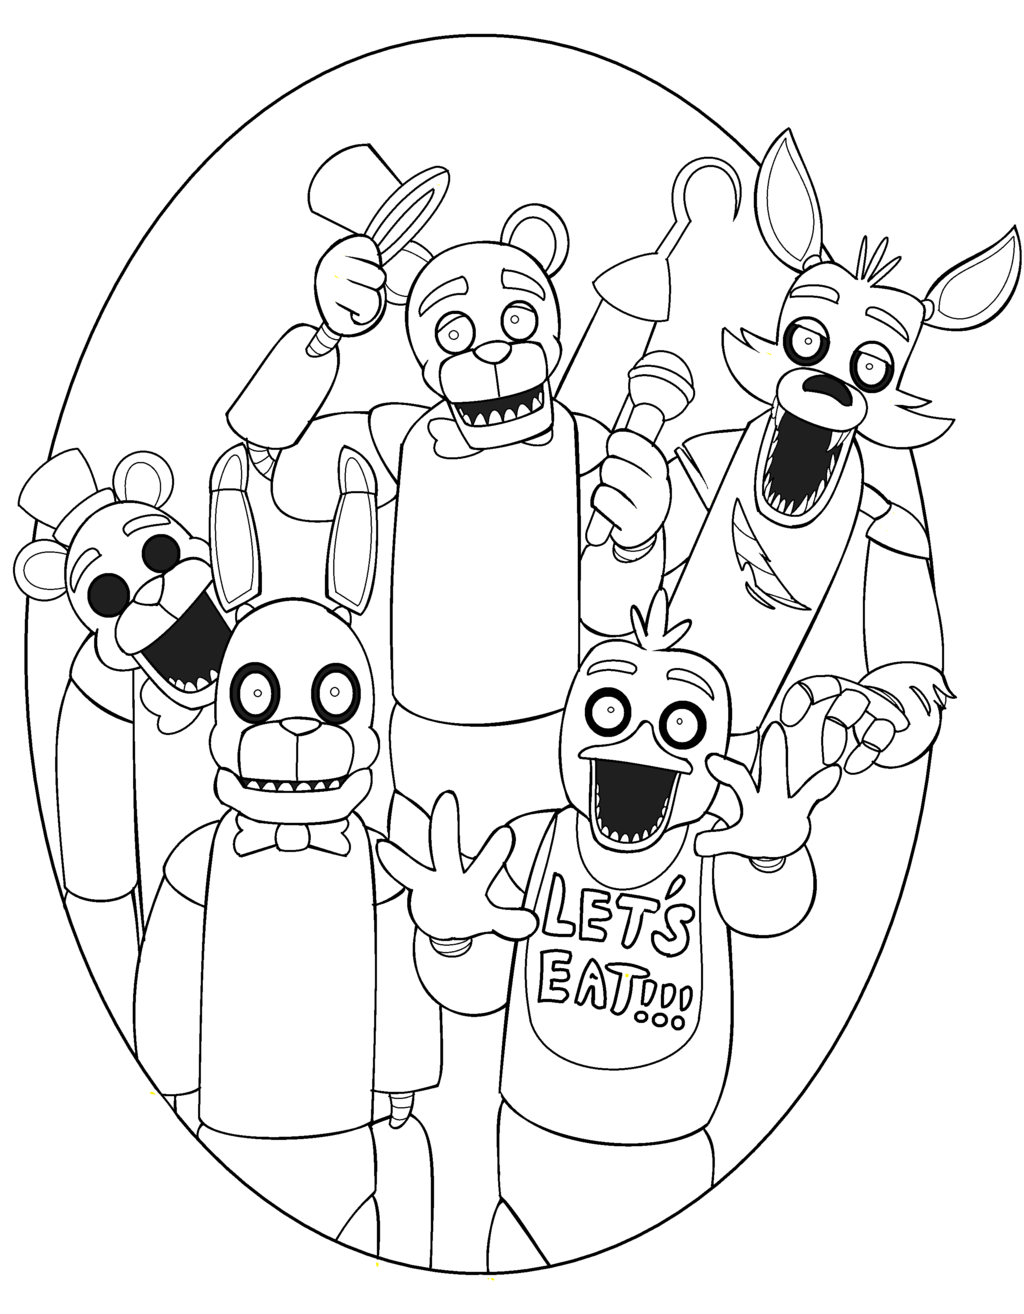 toy freddy coloring pages 7 best colouring images on pinterest coloring books coloring freddy toy pages